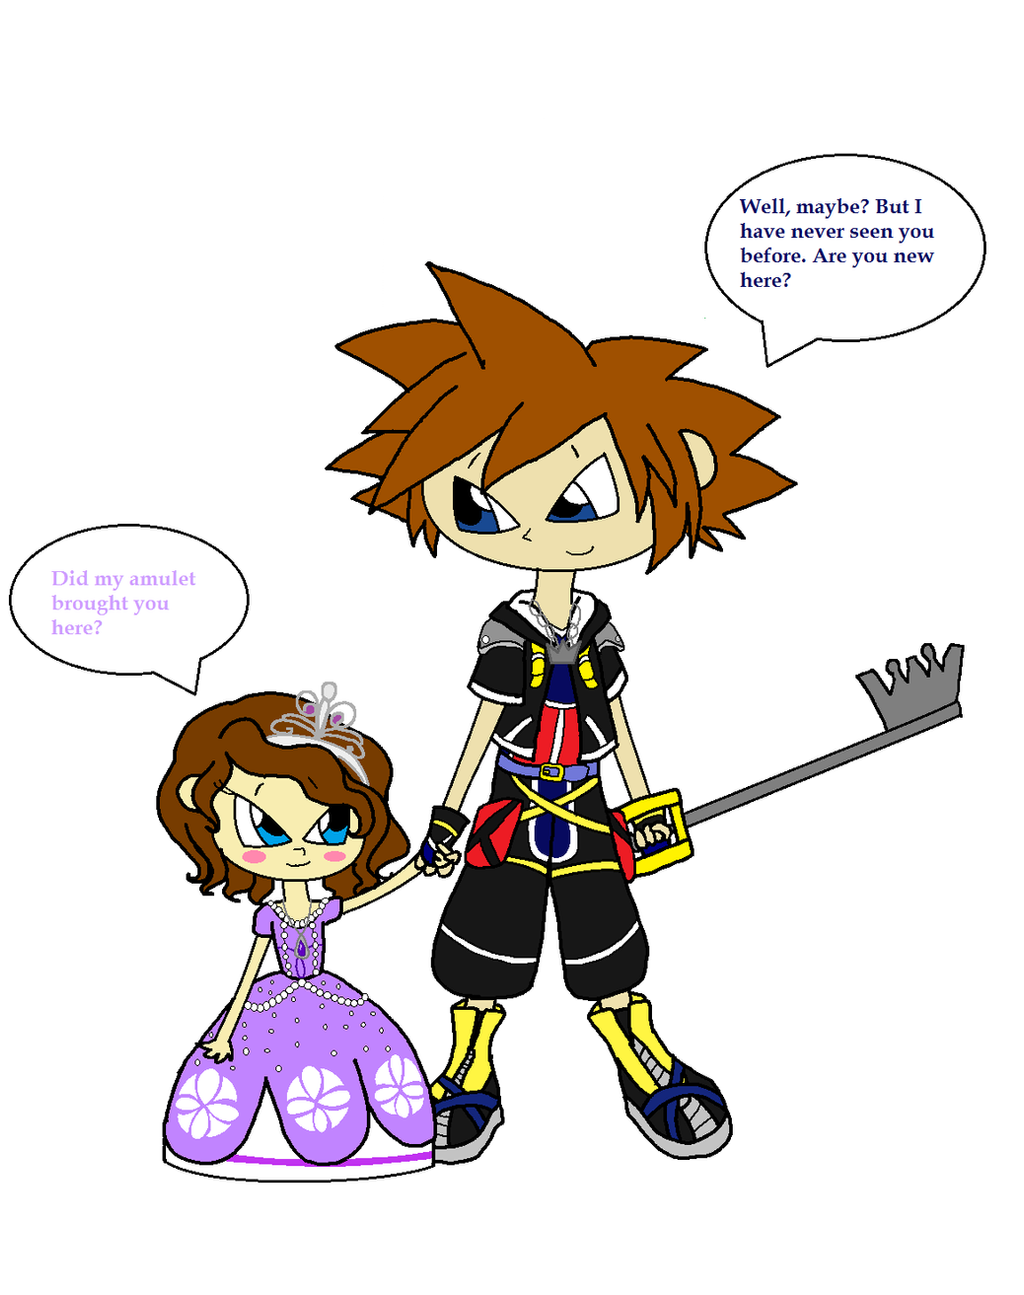 Sora Meets Princess Sofia I by Obeliskgirljohanny on  : sorameetsprincesssofiaibyobeliskgirljohanny d6uwoda from obeliskgirljohanny.deviantart.com size 1024 x 1294 png 365kB